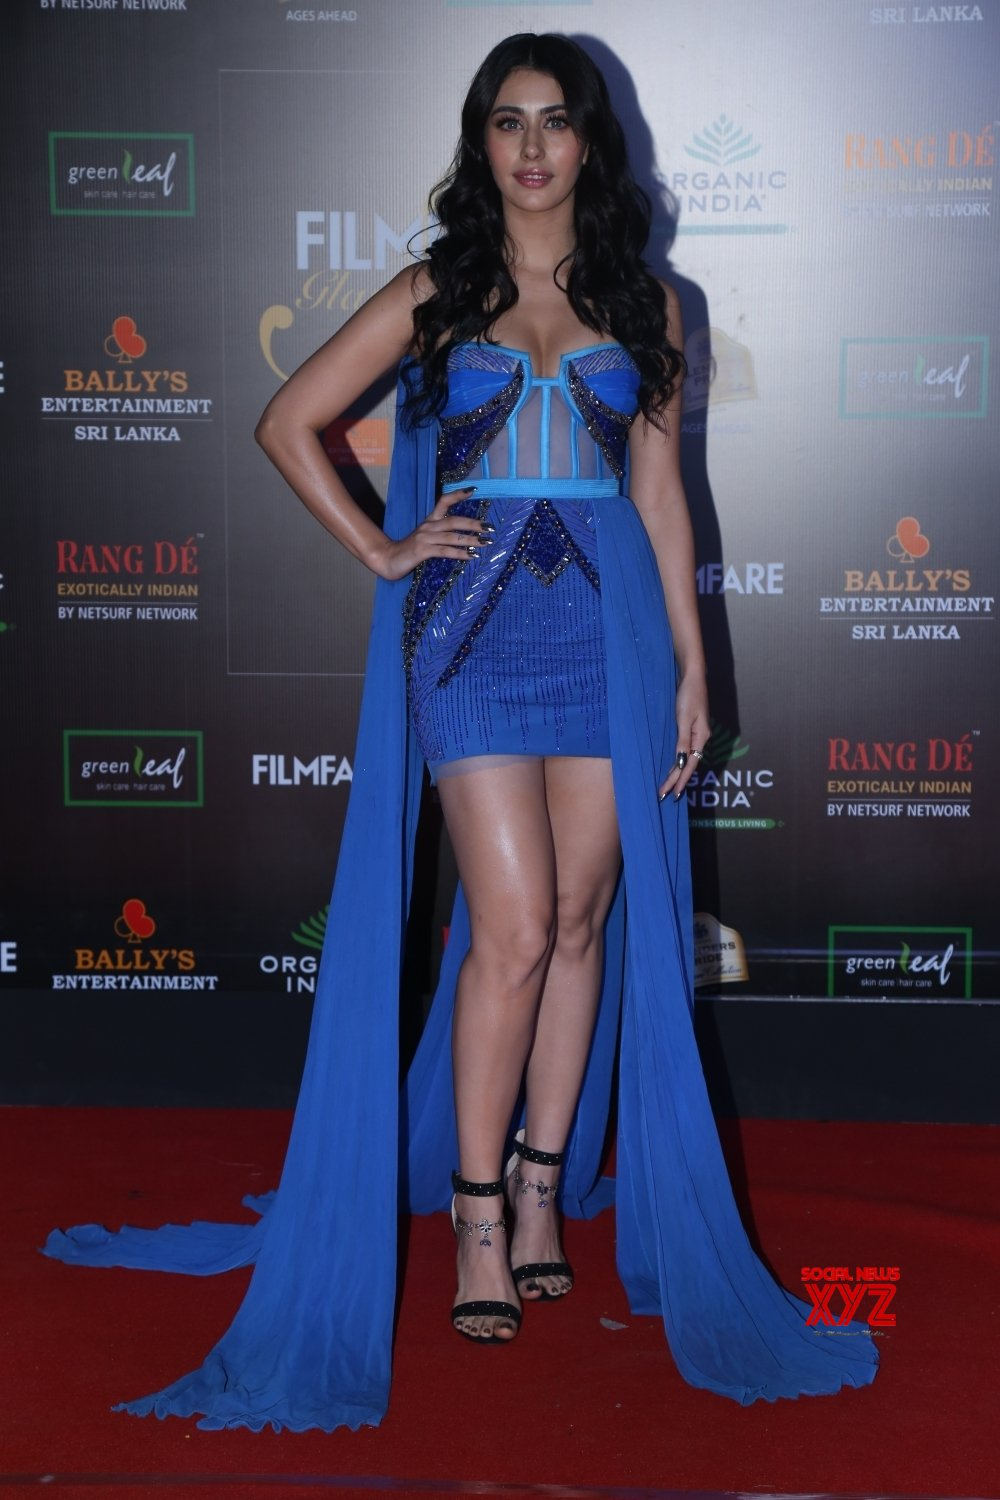 Mumbai: Filmfare Glamour And Style Awards 2019 - Warina Hussain #Gallery